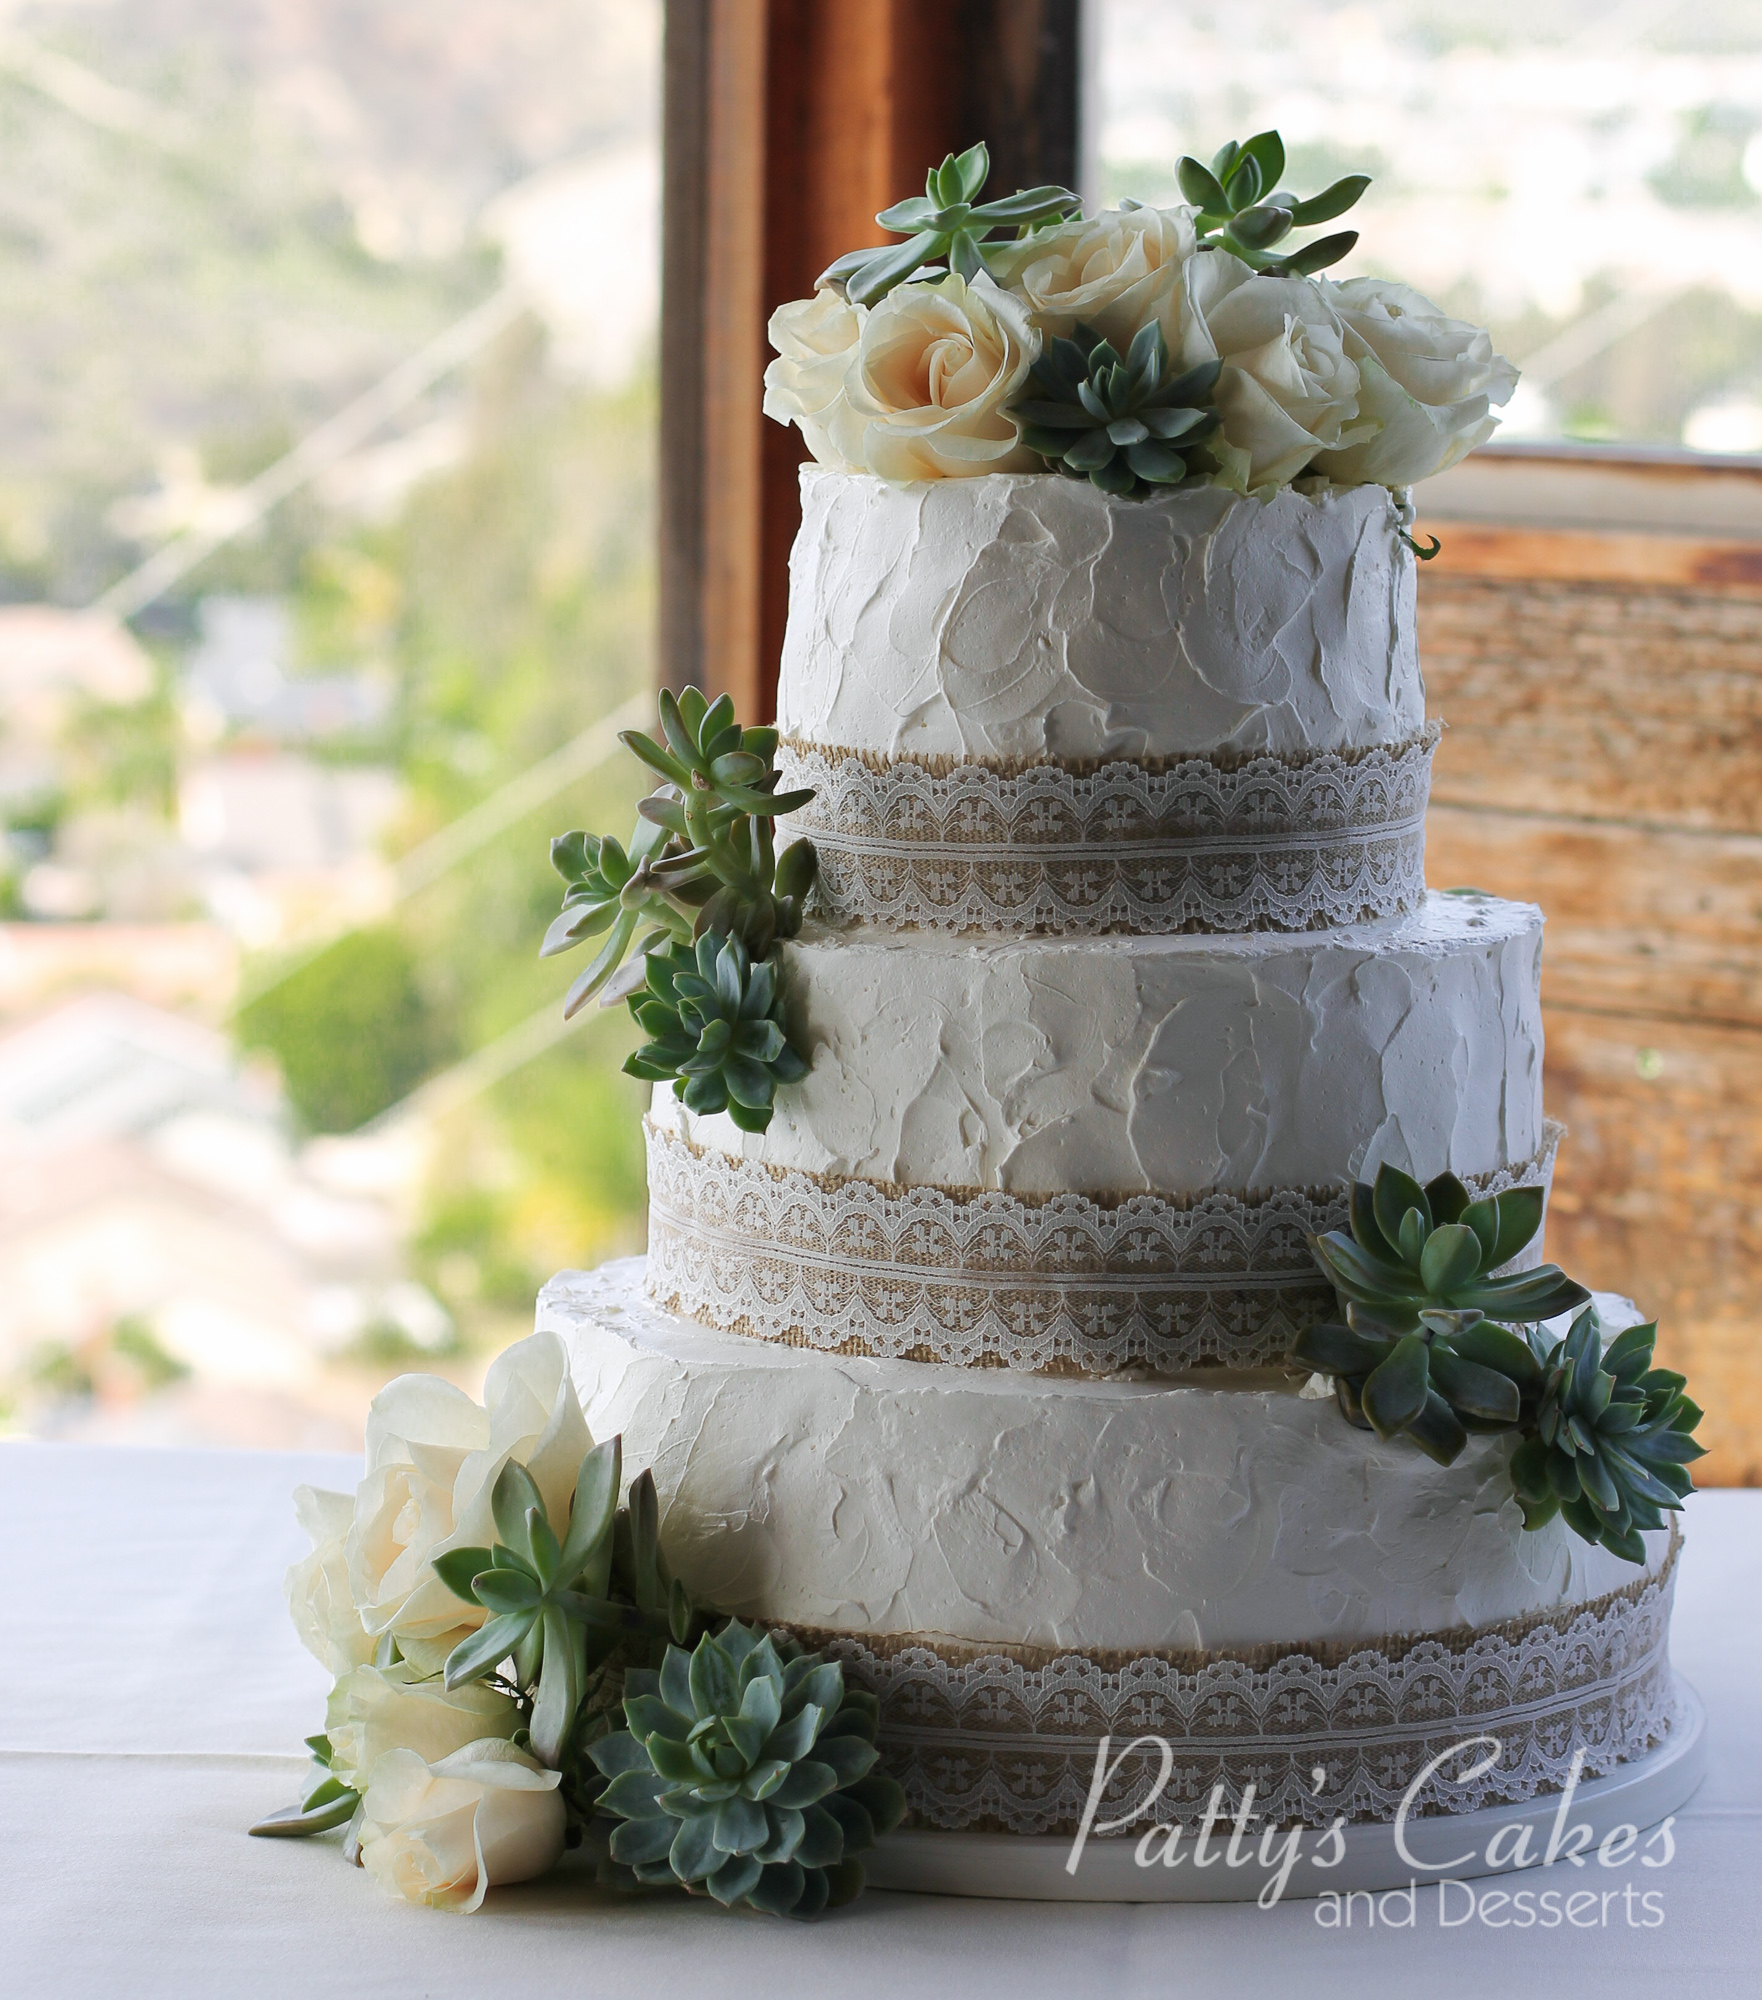 Simple Wedding Cakes: Photo Of A Simple Rustic Wedding Cake